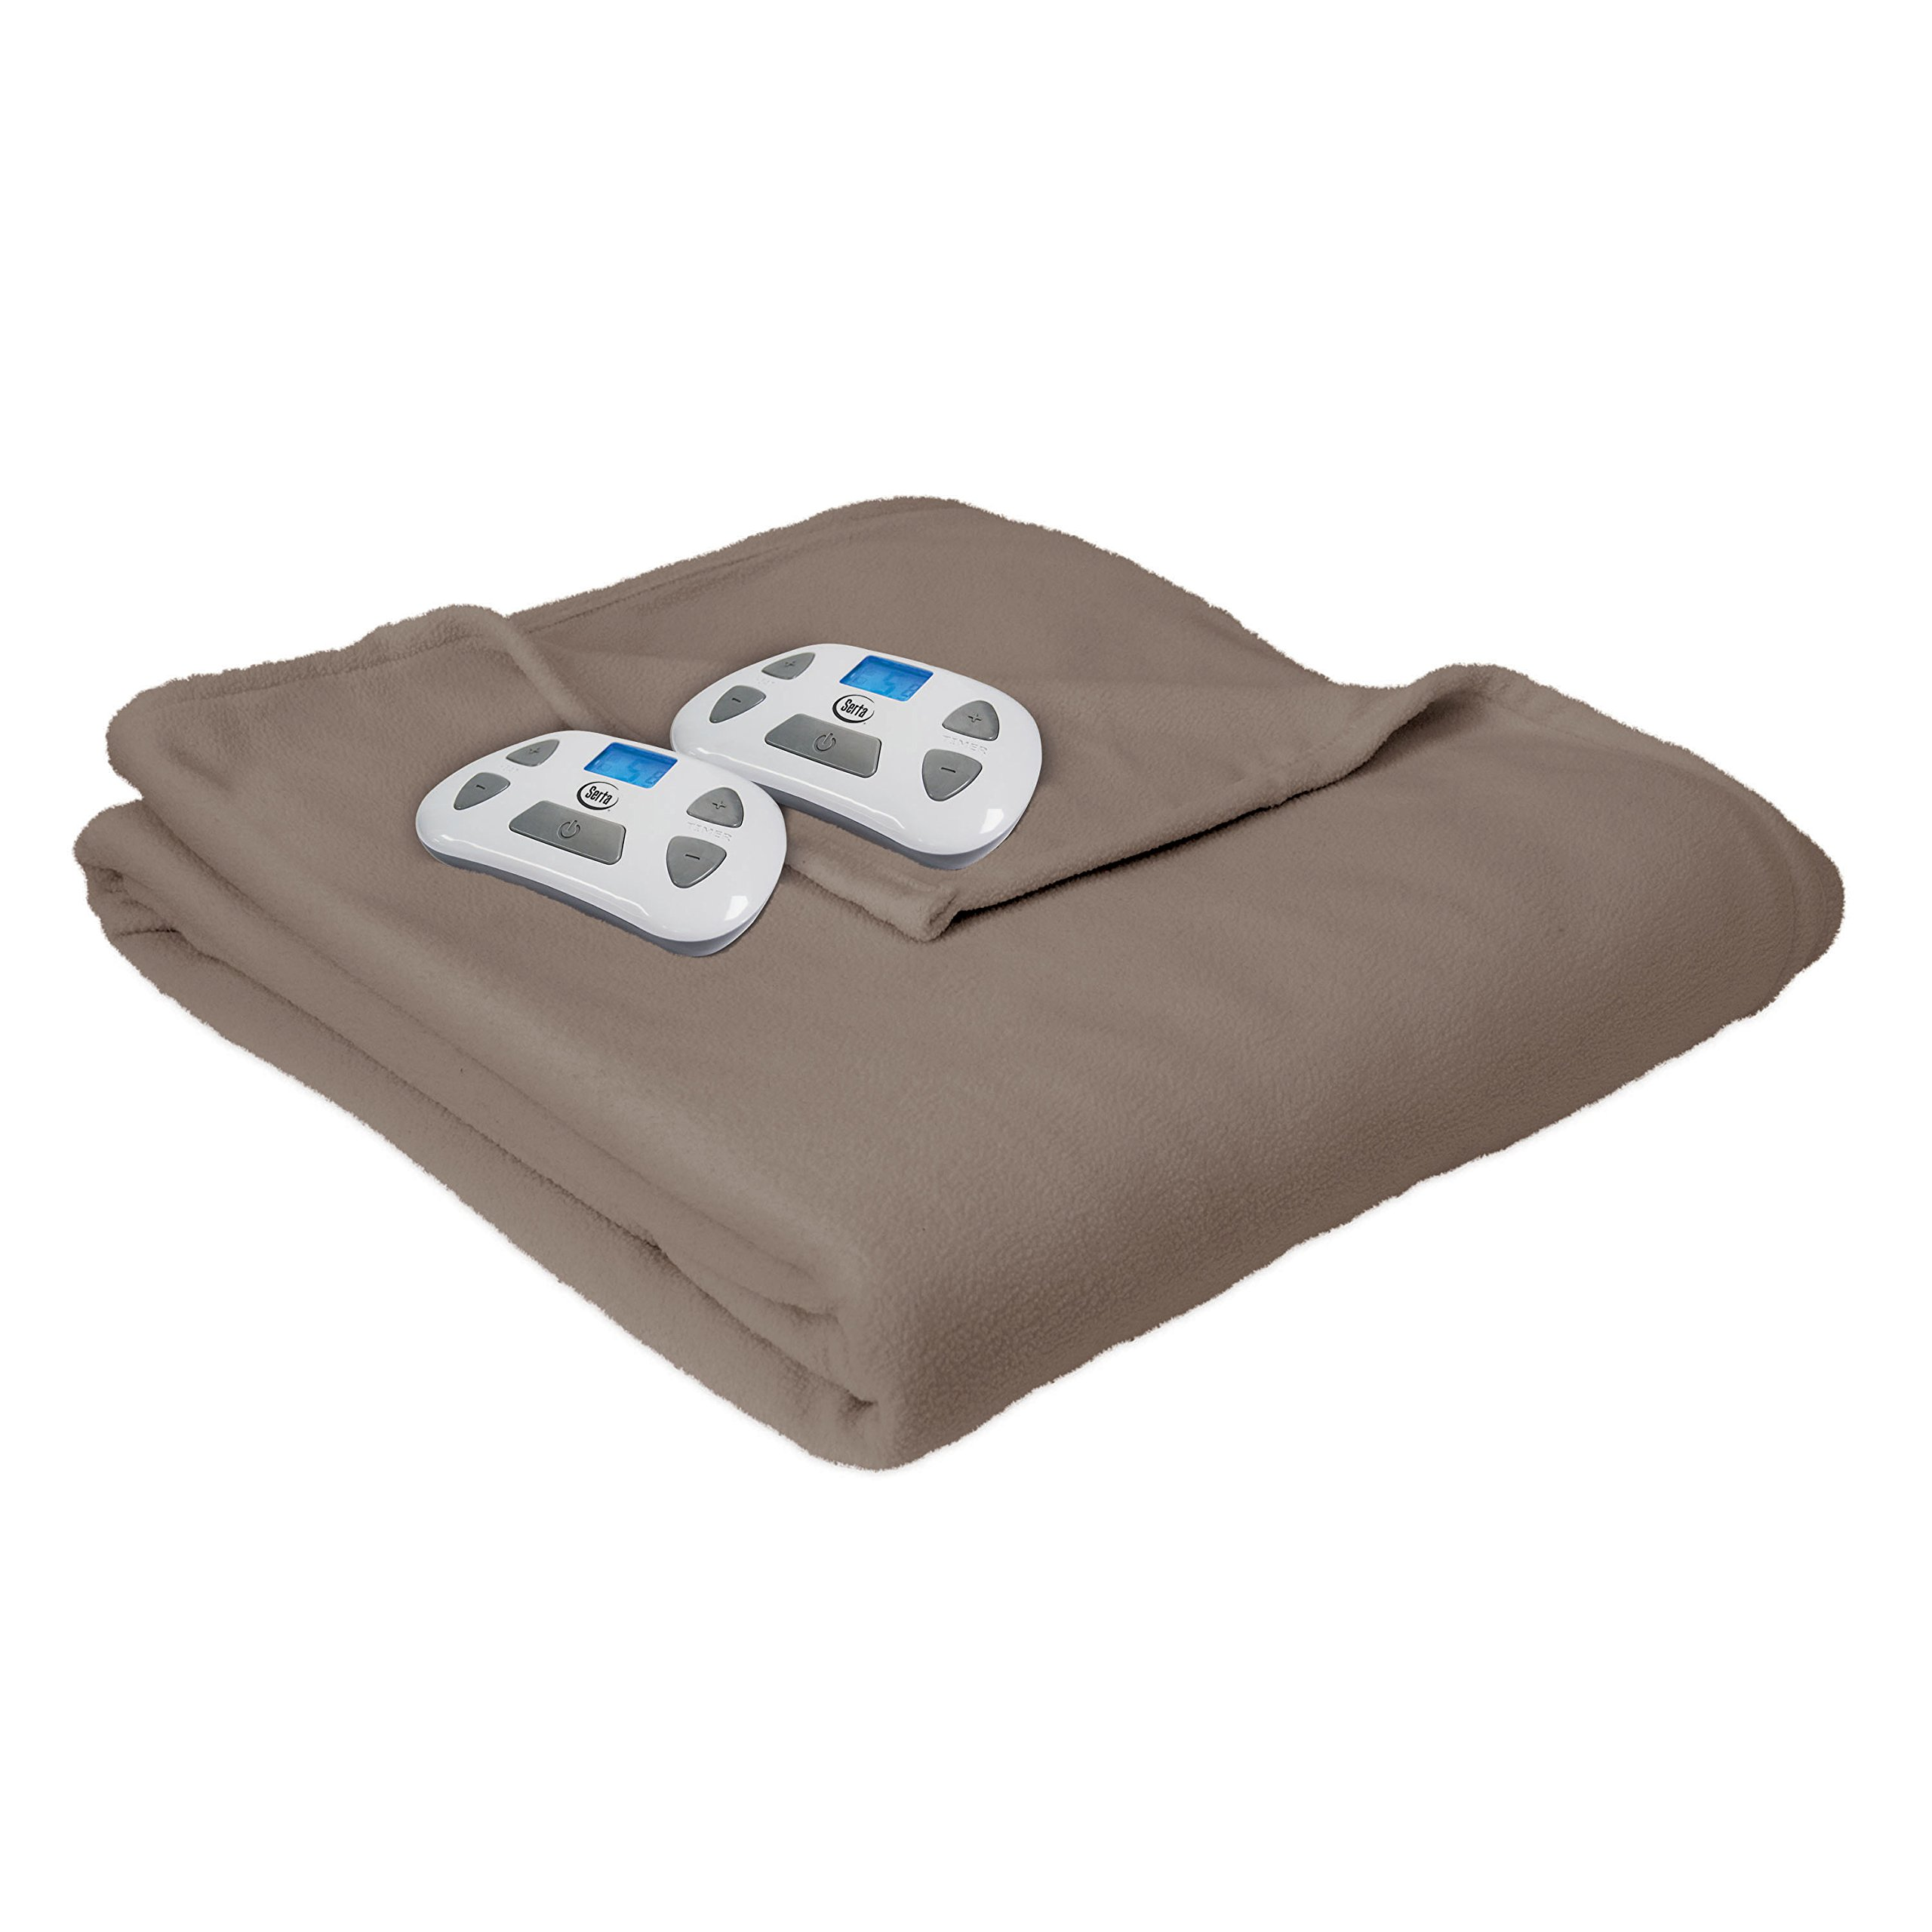 Serta Heated Electric Fleece Blanket  with Programmable Digital Controller, King, Natural Model 0917